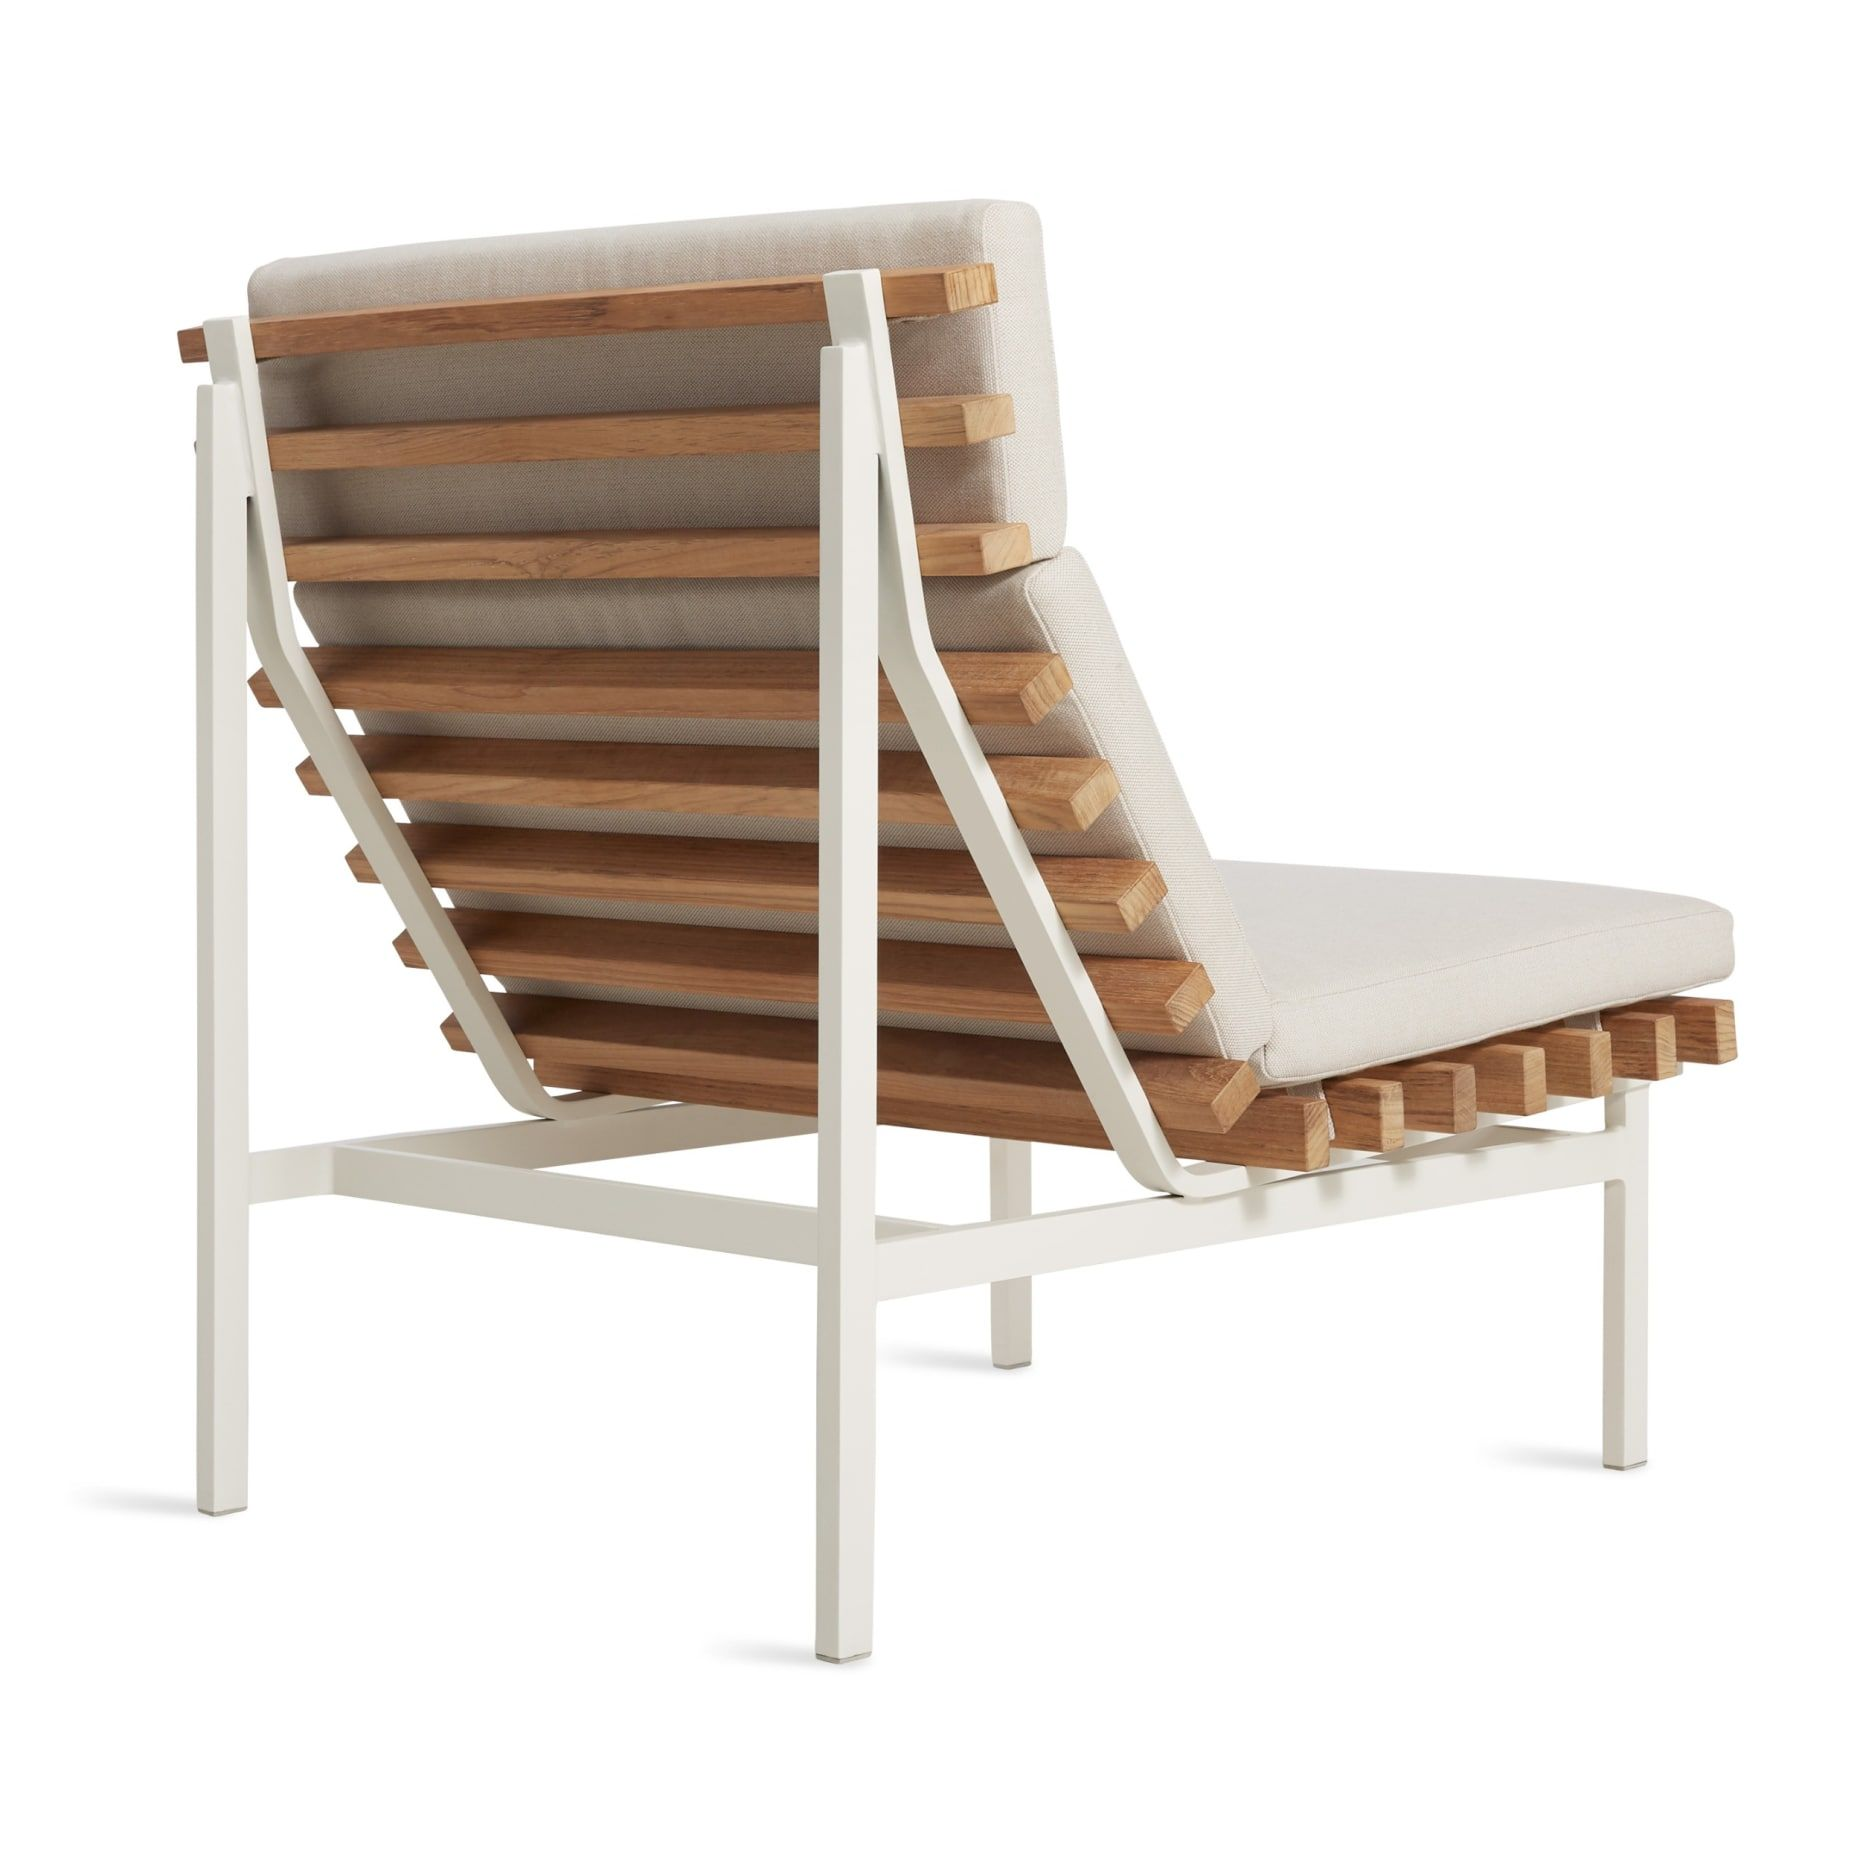 Perch Outdoor Lounge Chair Lounge Chair Outdoor Patio Furnishings Modern Outdoor Lounge Chair